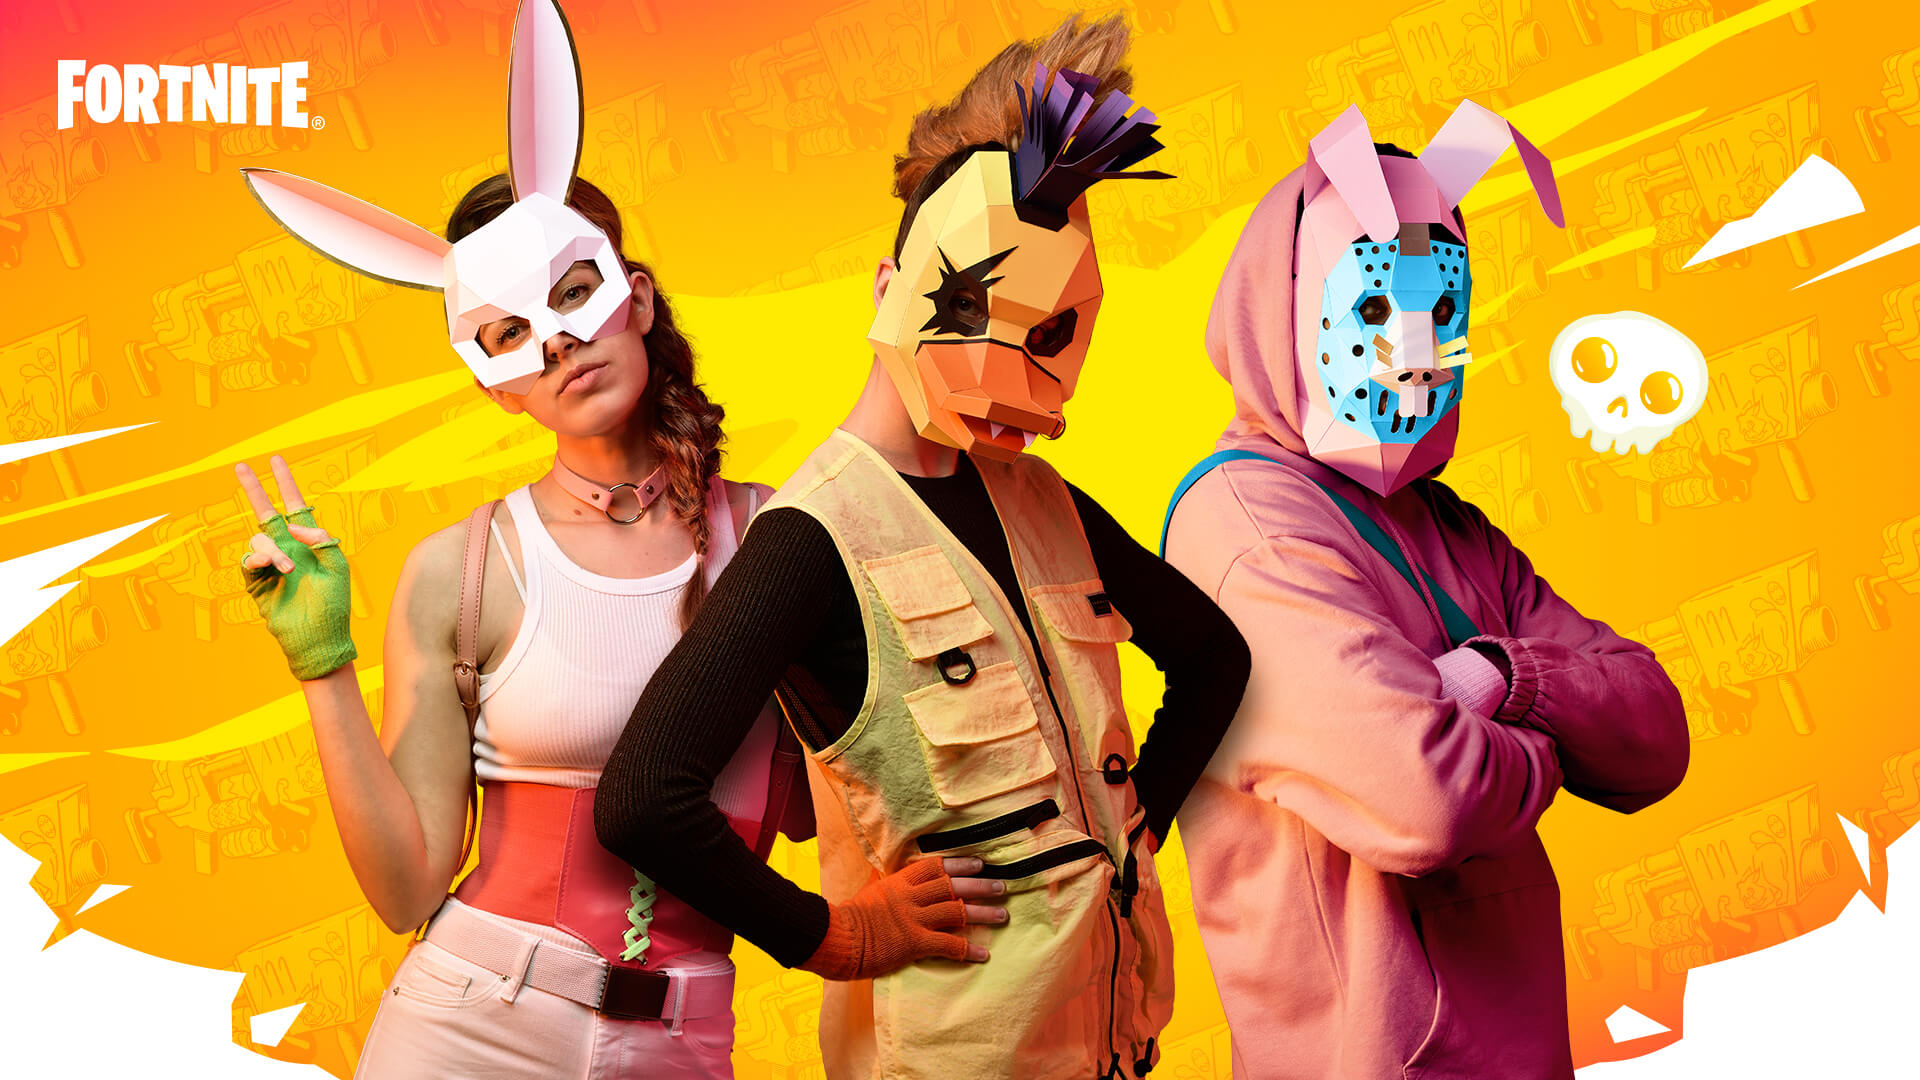 Fortnite Spring Breakout Papercraft Masks